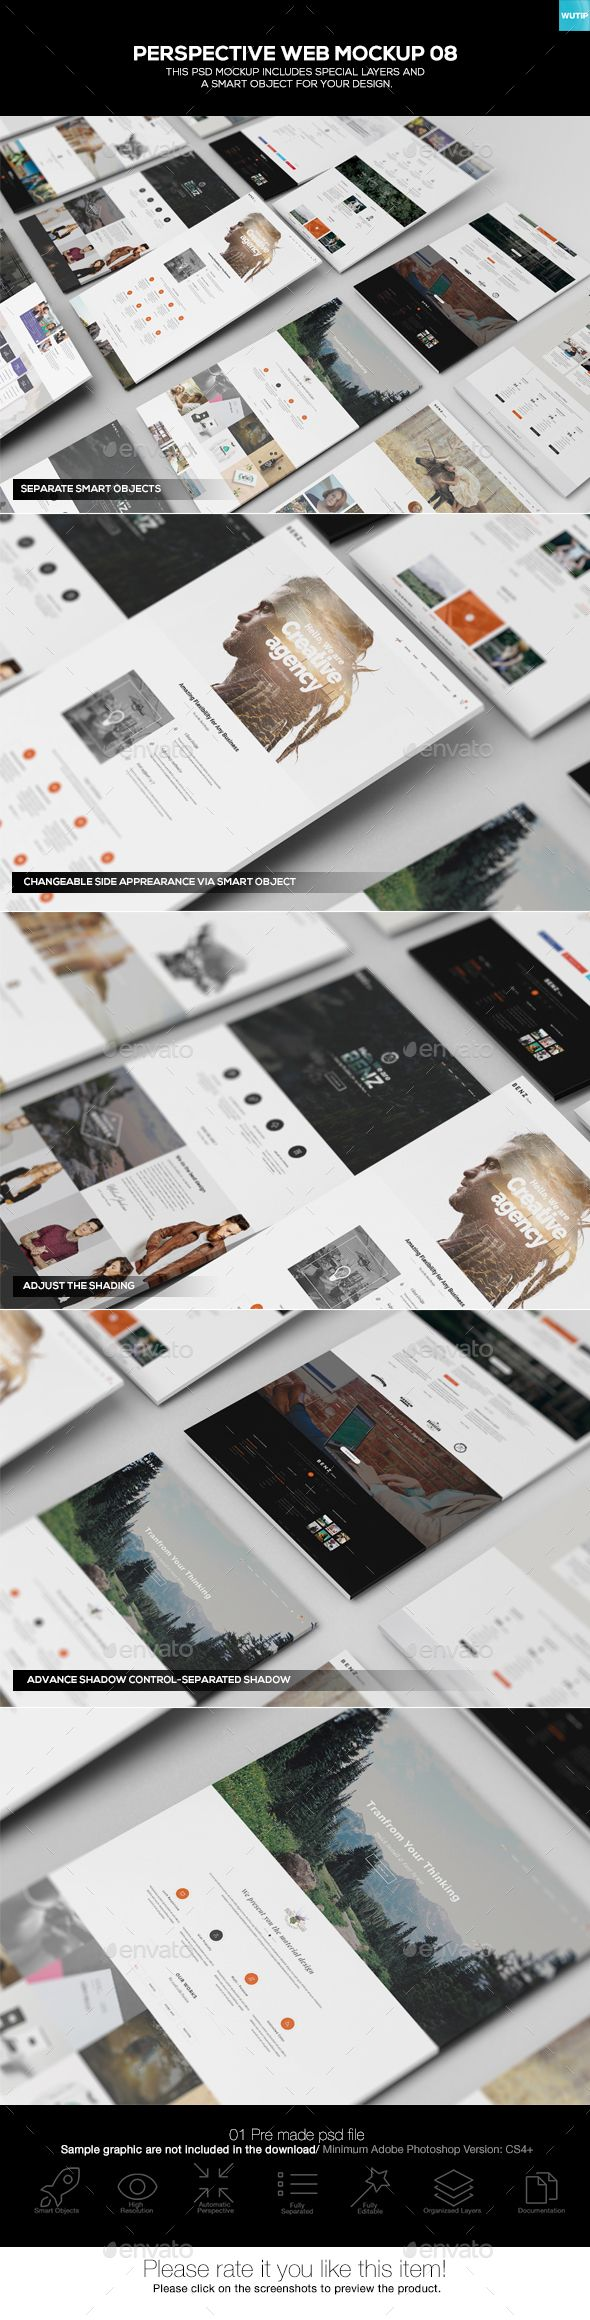 Perspective #Web #Mockup 08 - Miscellaneous Displays Download here: https://graphicriver.net/item/perspective-web-mockup-08/19575375?ref=alena994